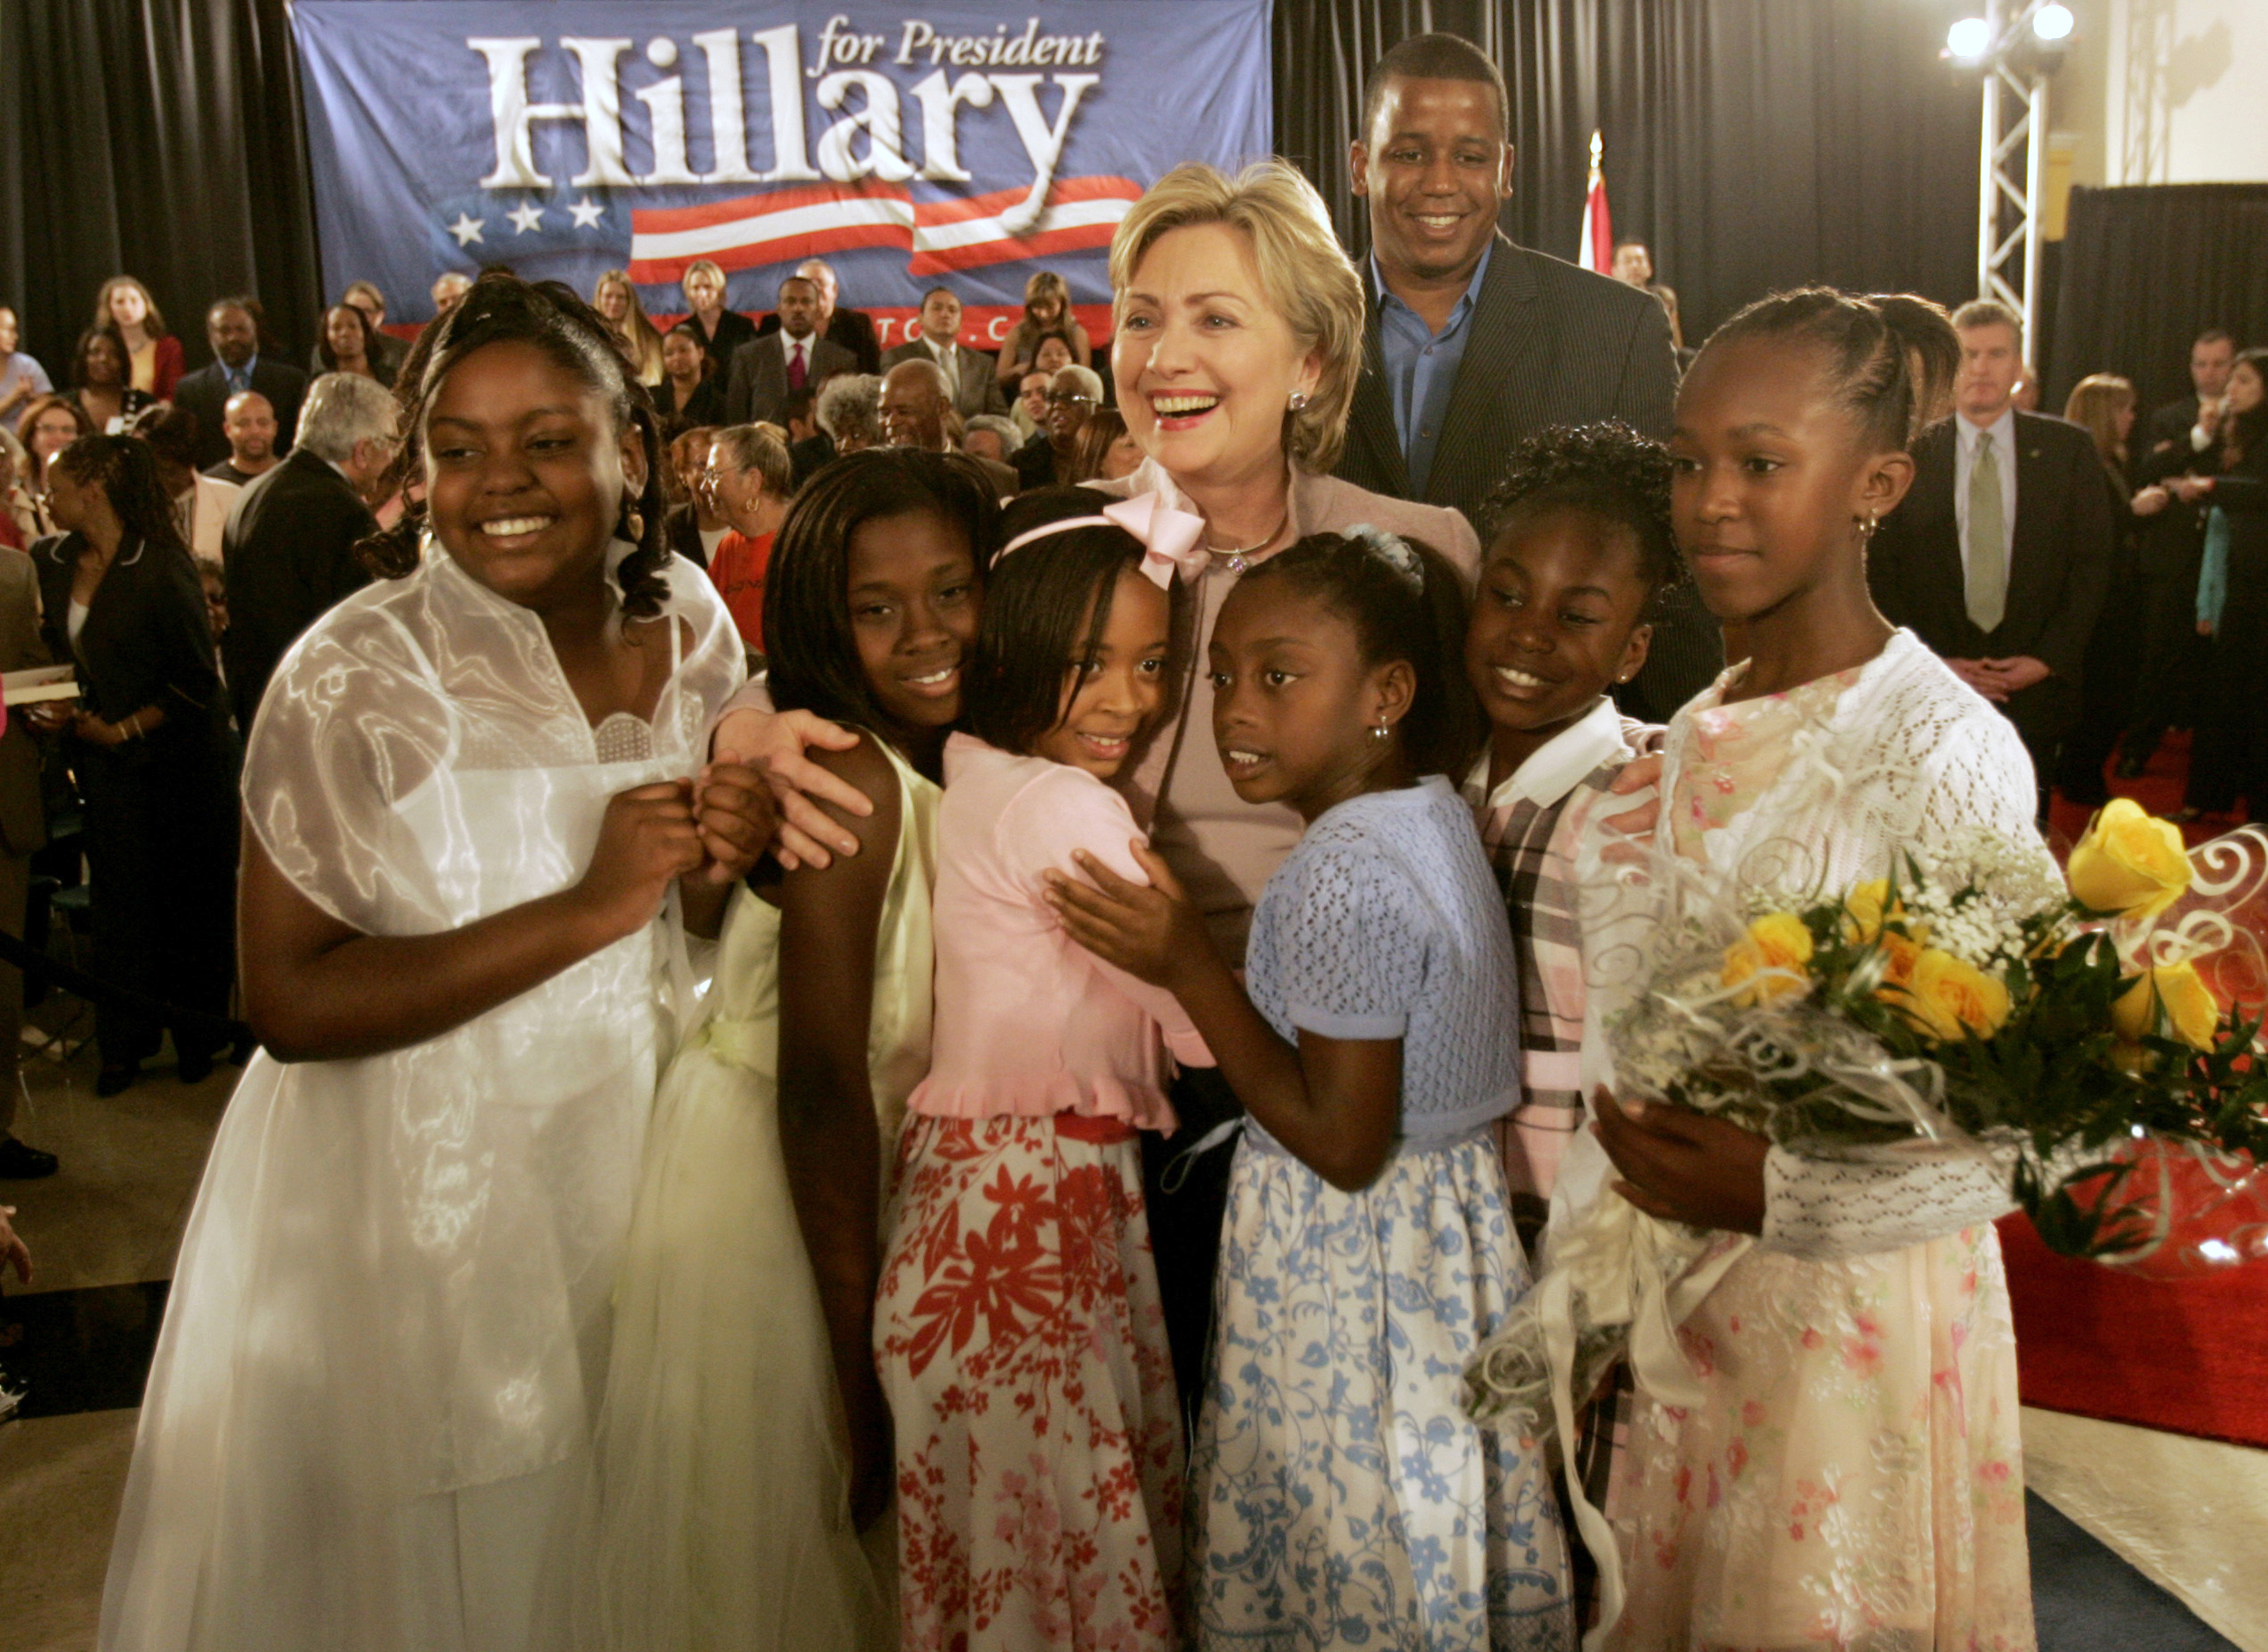 Hillary Rodham Clinton is hugged by girls who presented her with flowers at the Joseph Caleb Center in Miami, on Feb. 20, 2007.